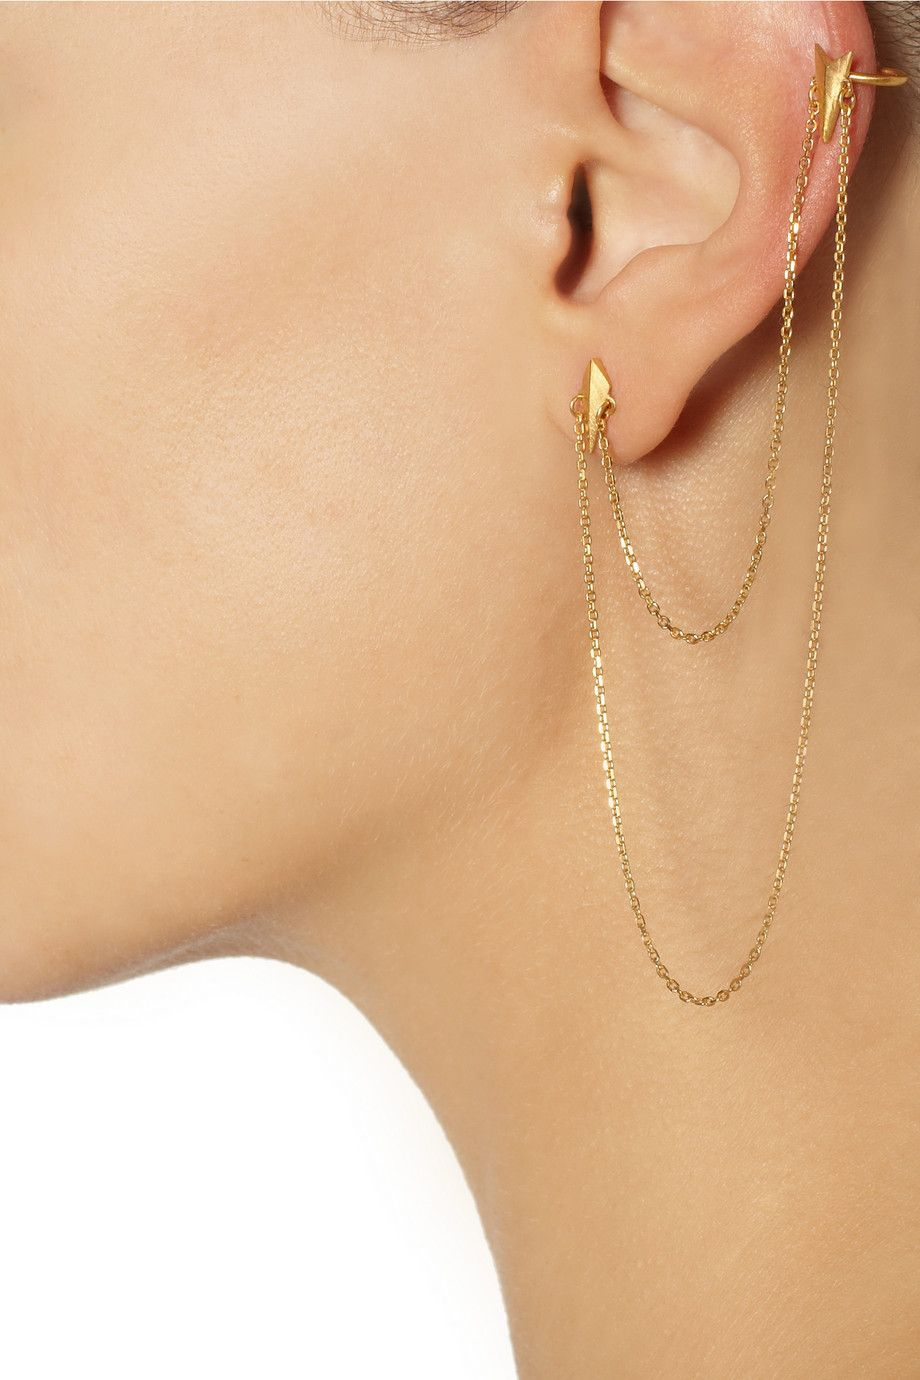 Maria Black | D'arling gold-plated earring | NET-A-PORTER.COM